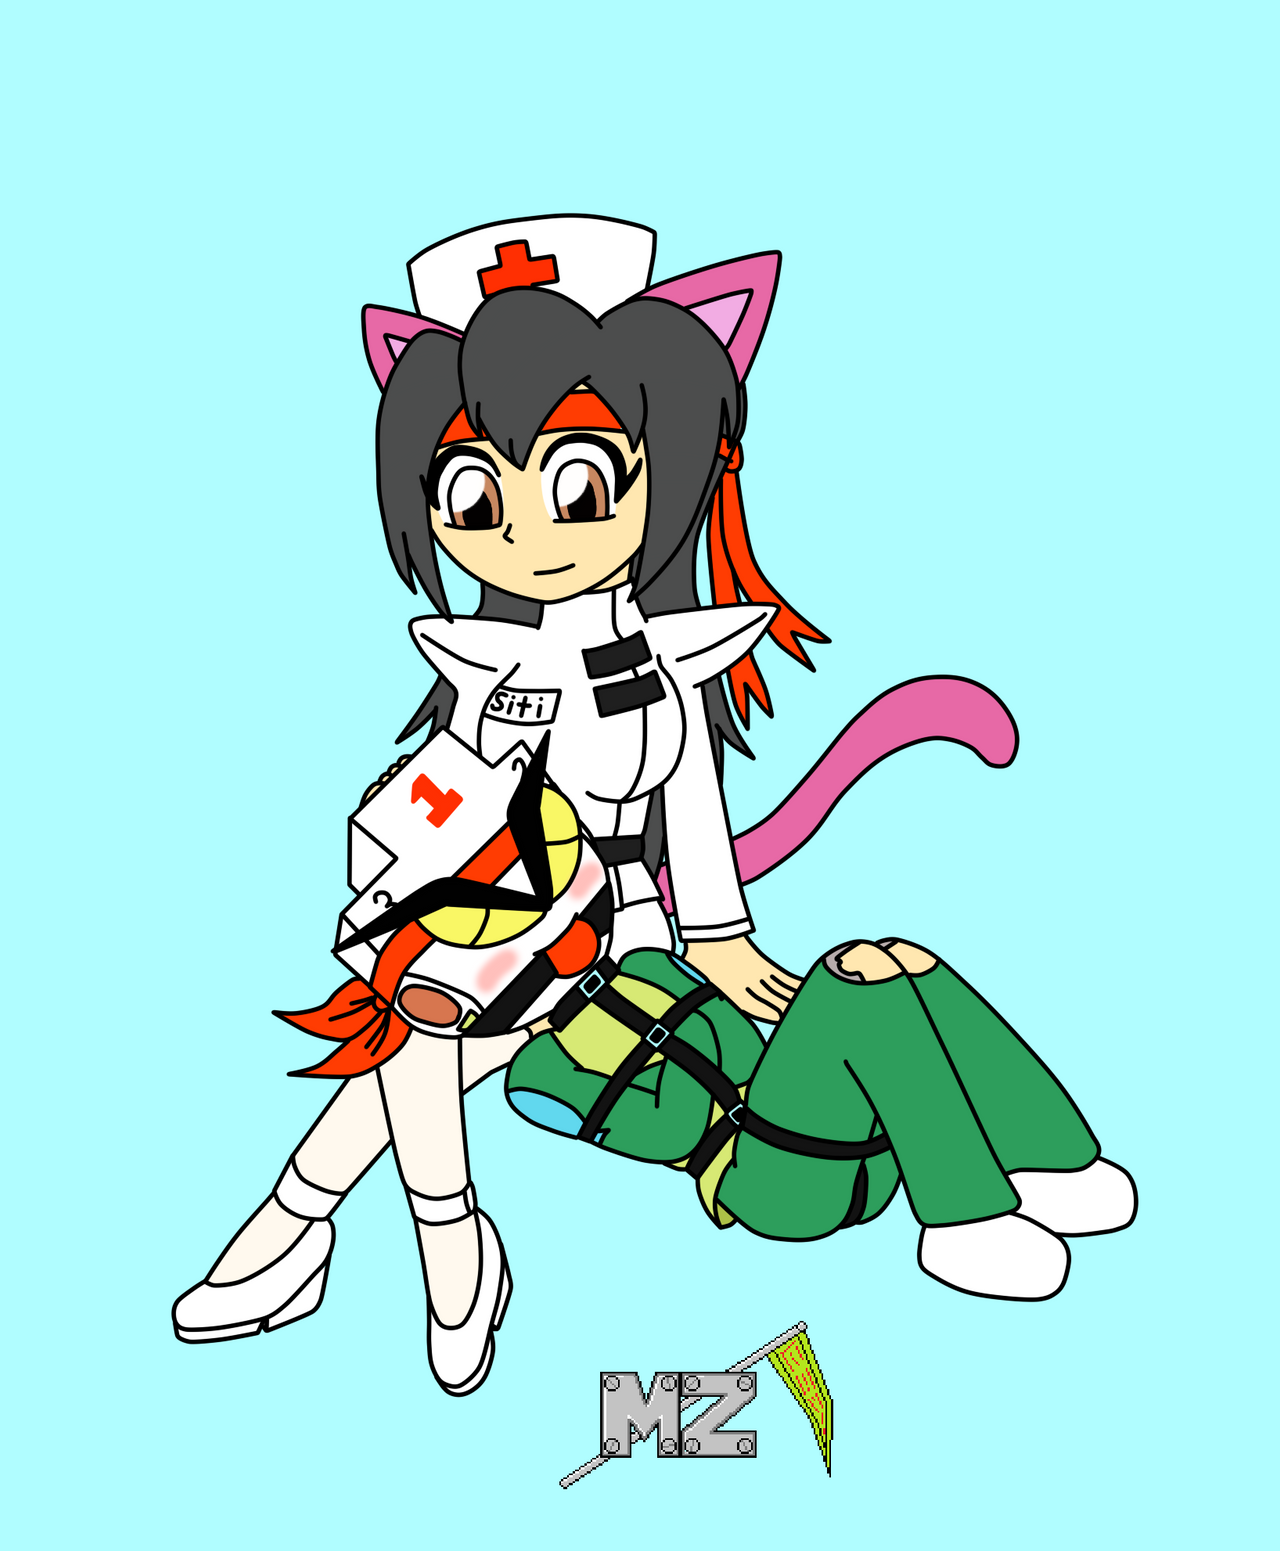 Nurse Siti gets nuzzled by metalzaki